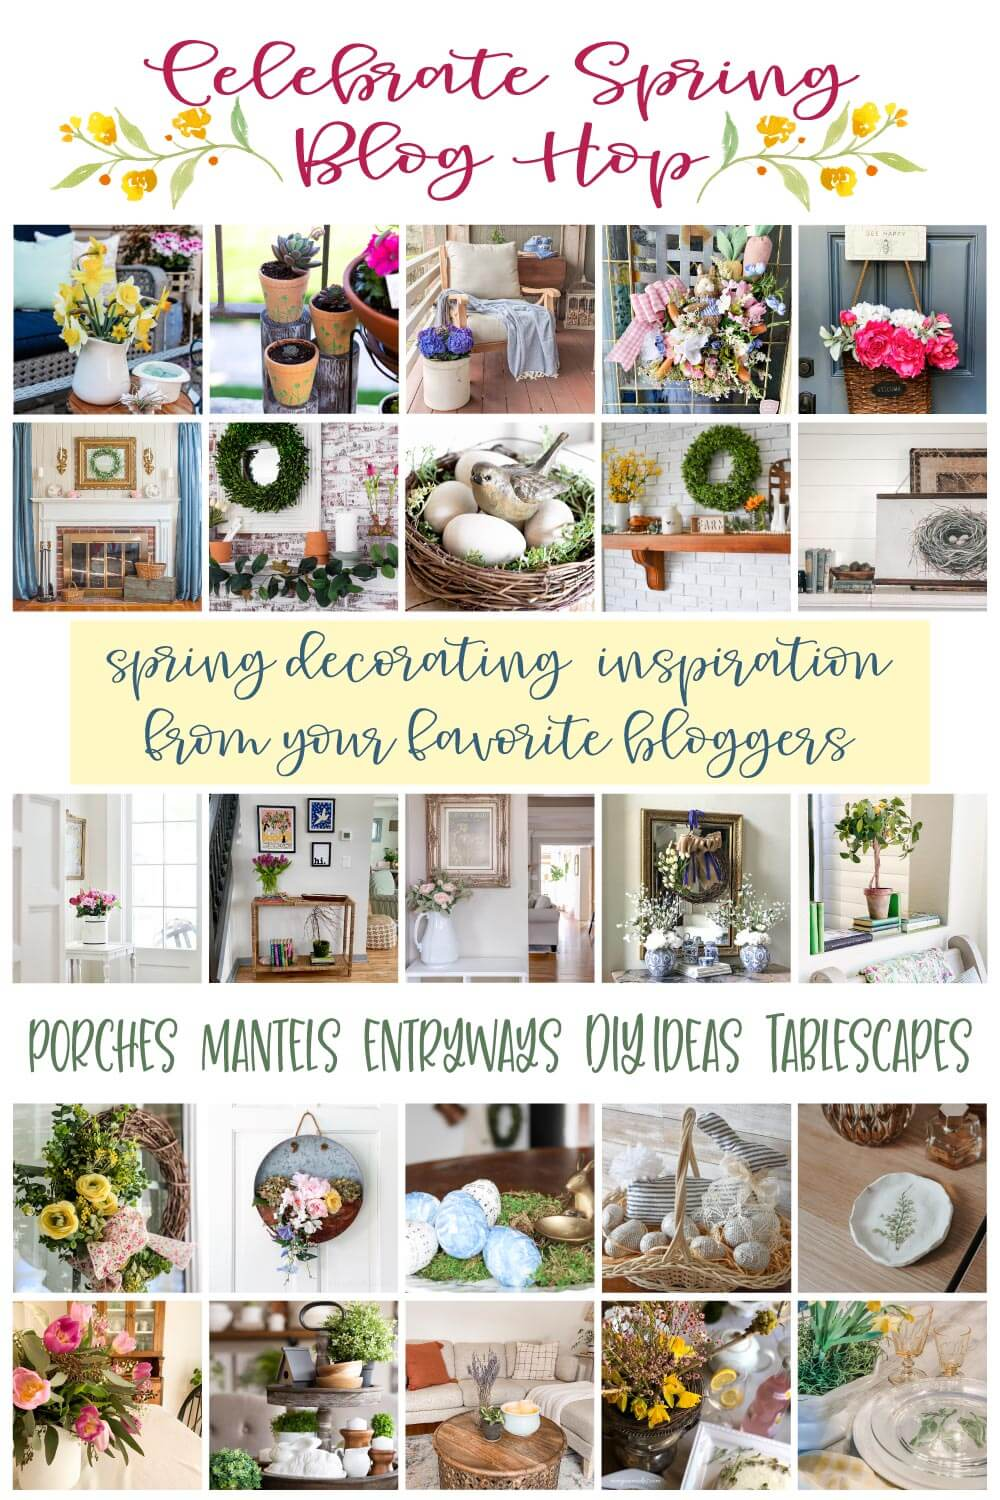 Check out 24 home decor bloggers Celebrating Spring in their homes!